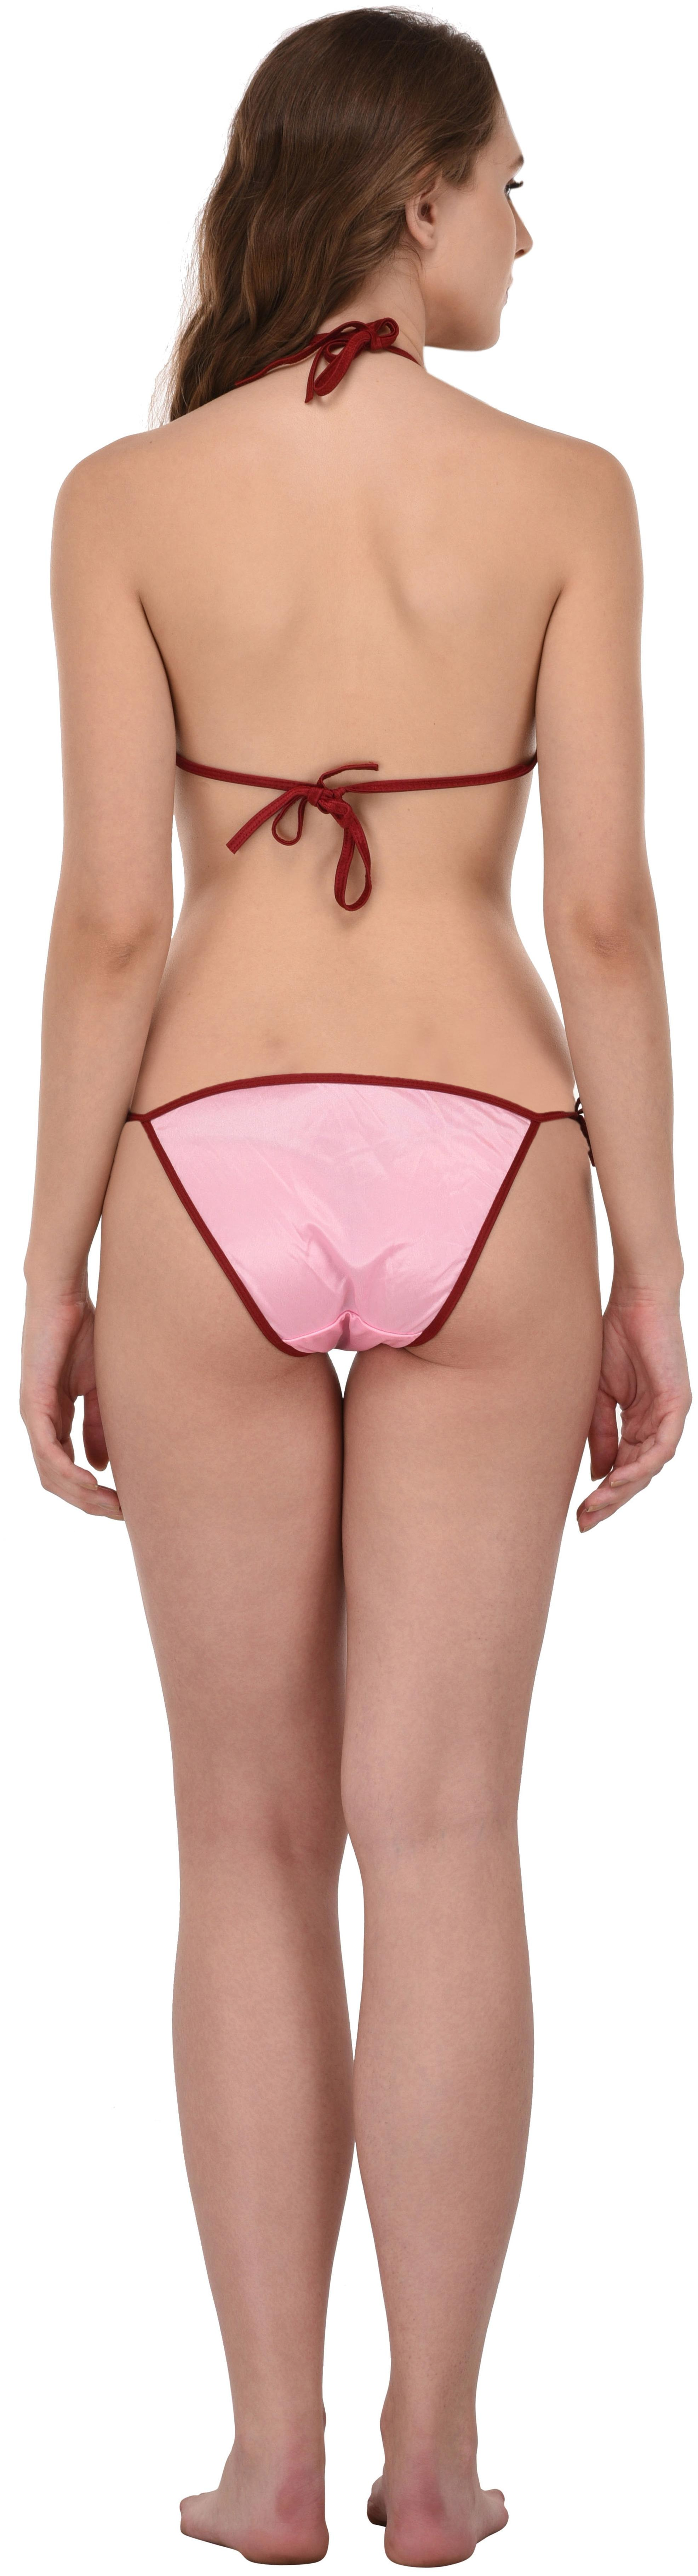 00fab26ef12 Buy You Forever Solid Minimizer Bra Lingerie Set - Pink Online at Low  Prices in India - Paytmmall.com